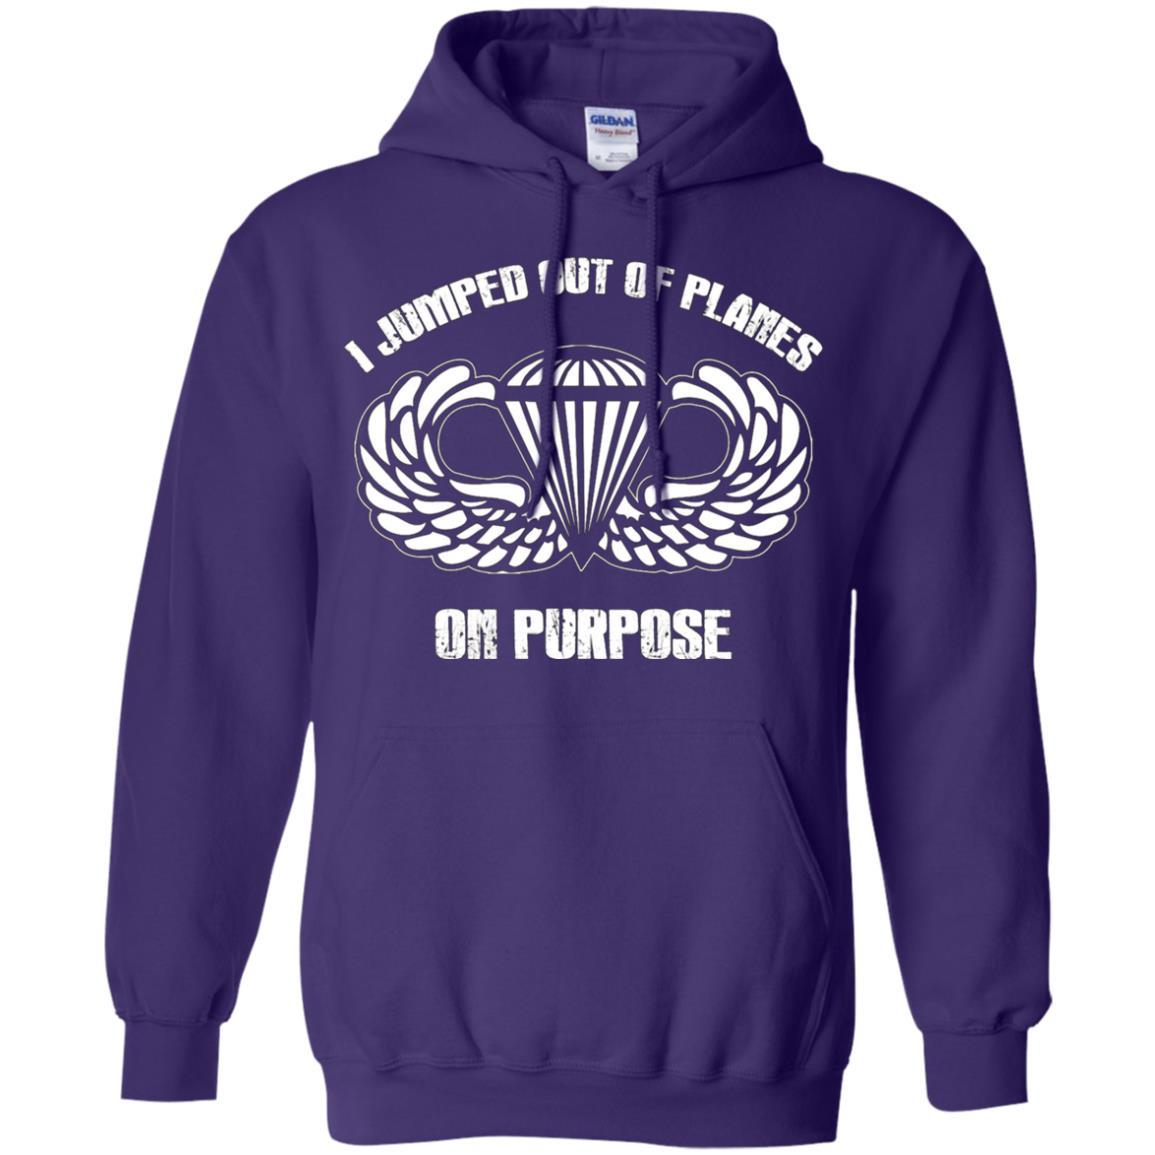 I jumped out of planes on purpose, Airborne - Pullover Hoodie Purple / 5XL